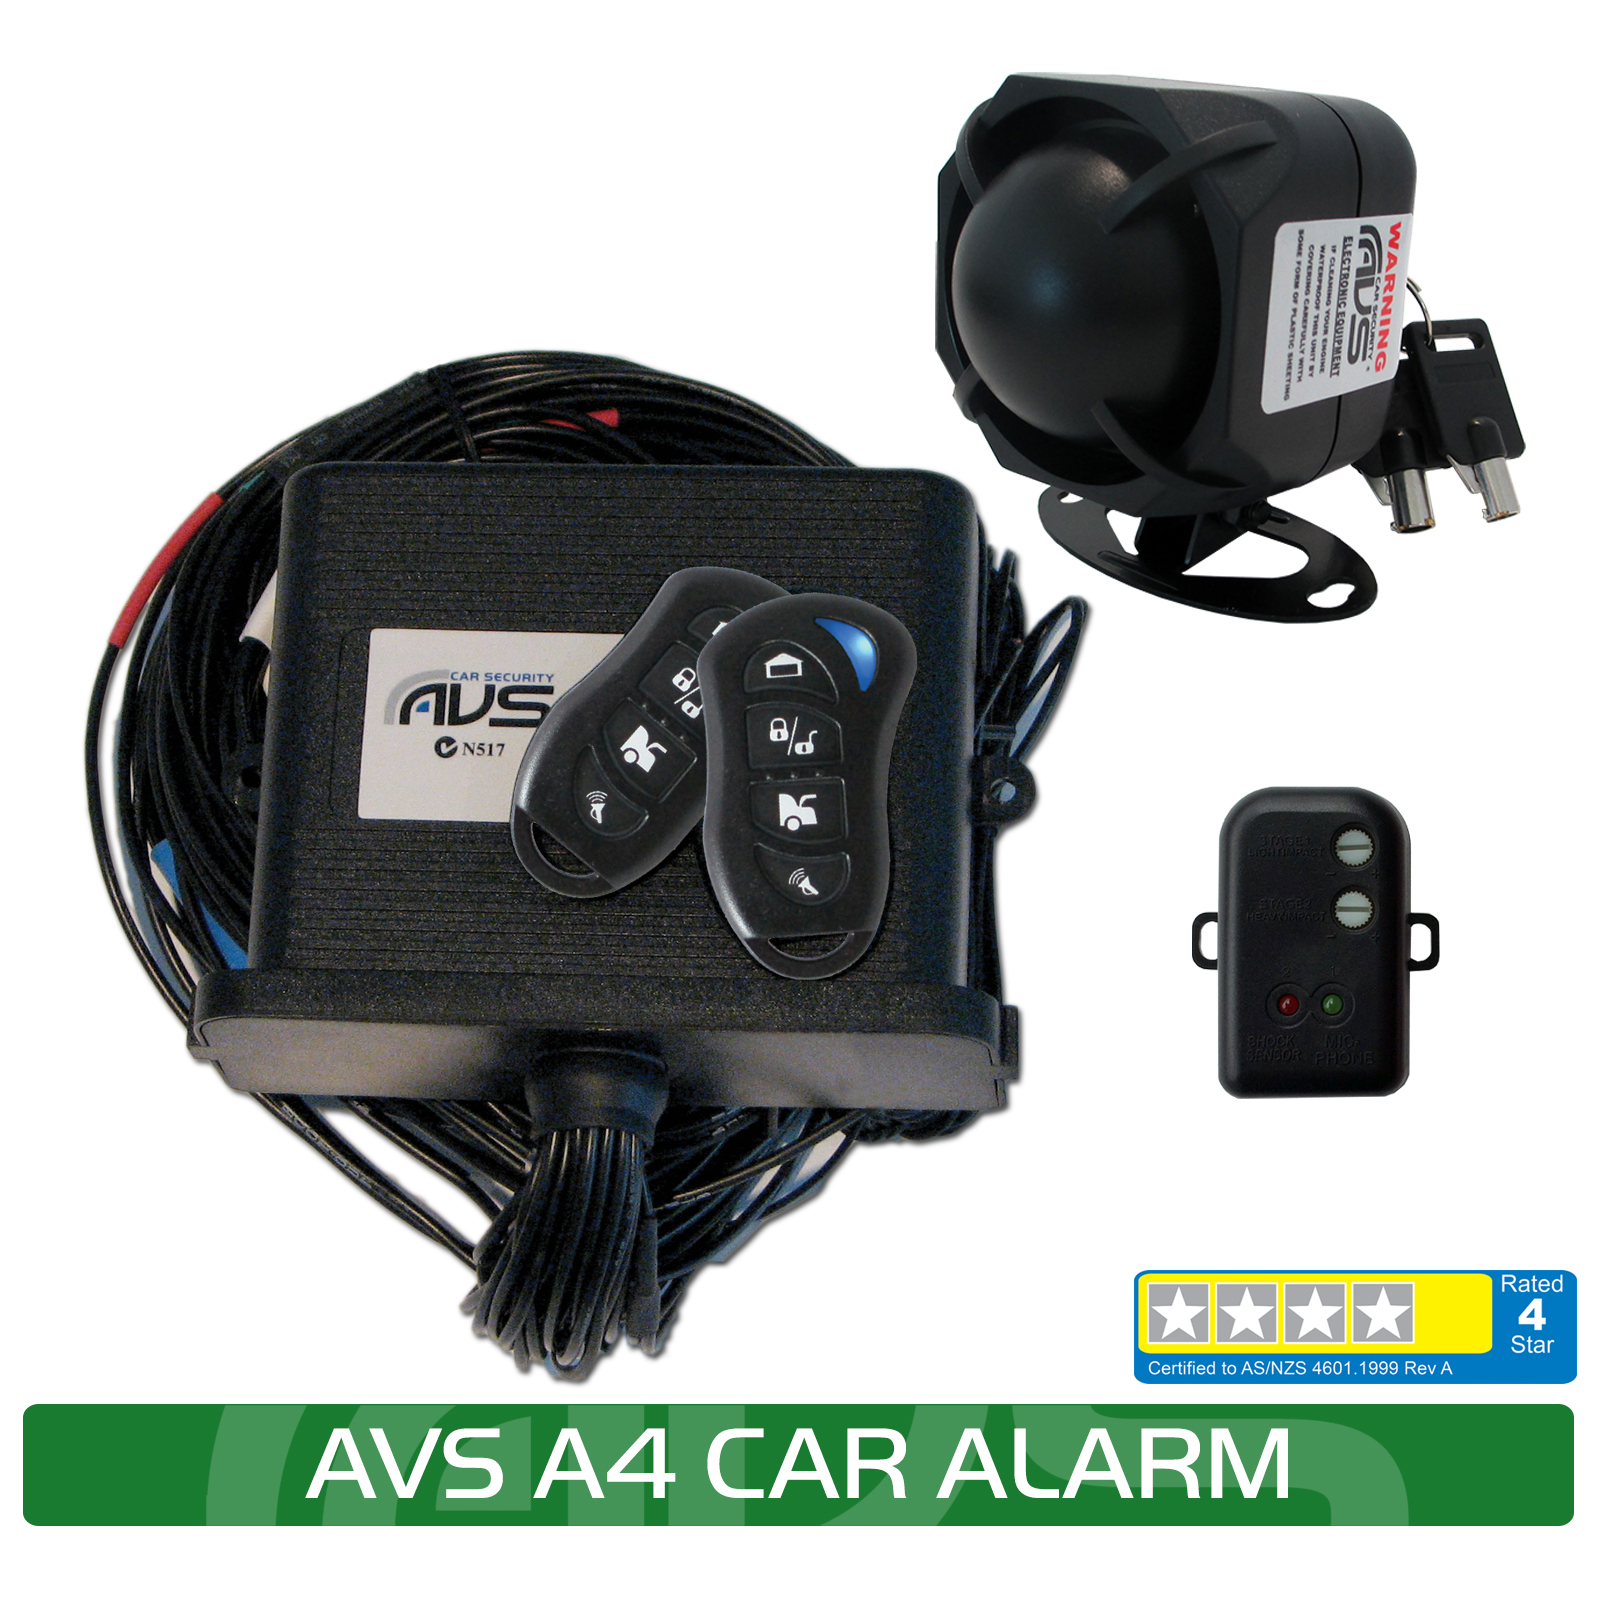 AVS A4 feature with shock avs 3010 car alarm avs car security 0800 438 862  at gsmportal.co